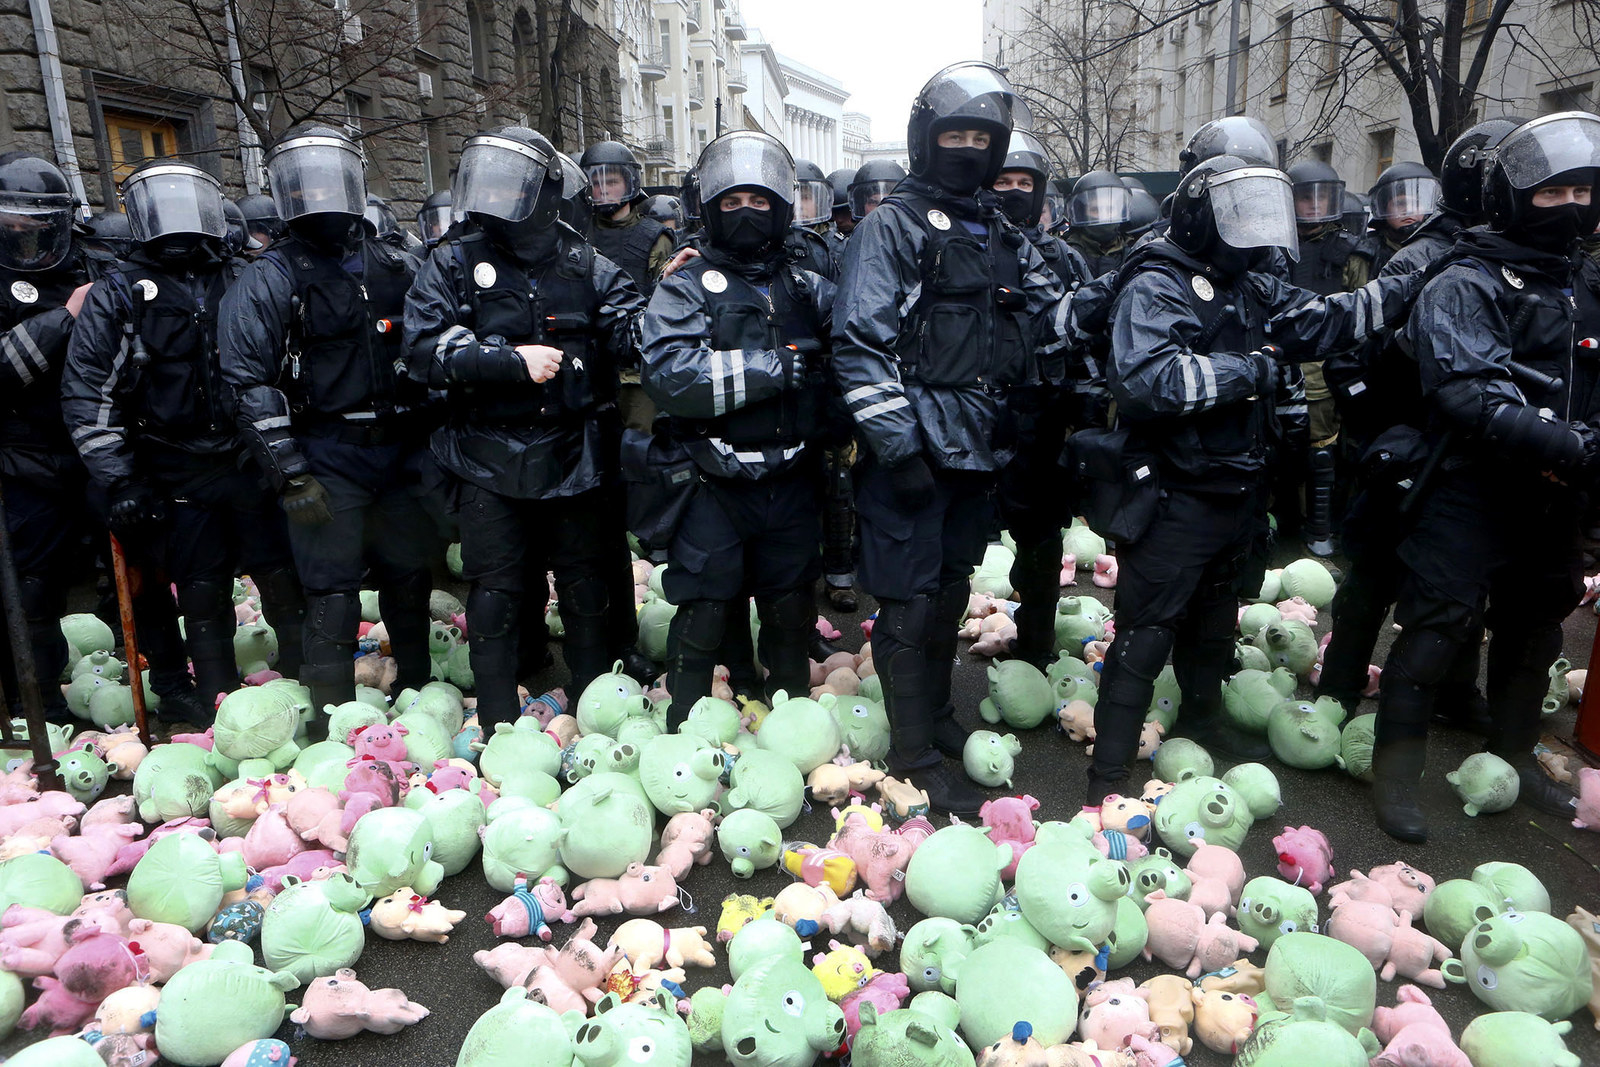 Riot police stand surrounded by toy pigs, thrown by far-right demonstrators during a rally against corruption in front of the Presidential administration's building in Kiev, Ukraine, on March 16.